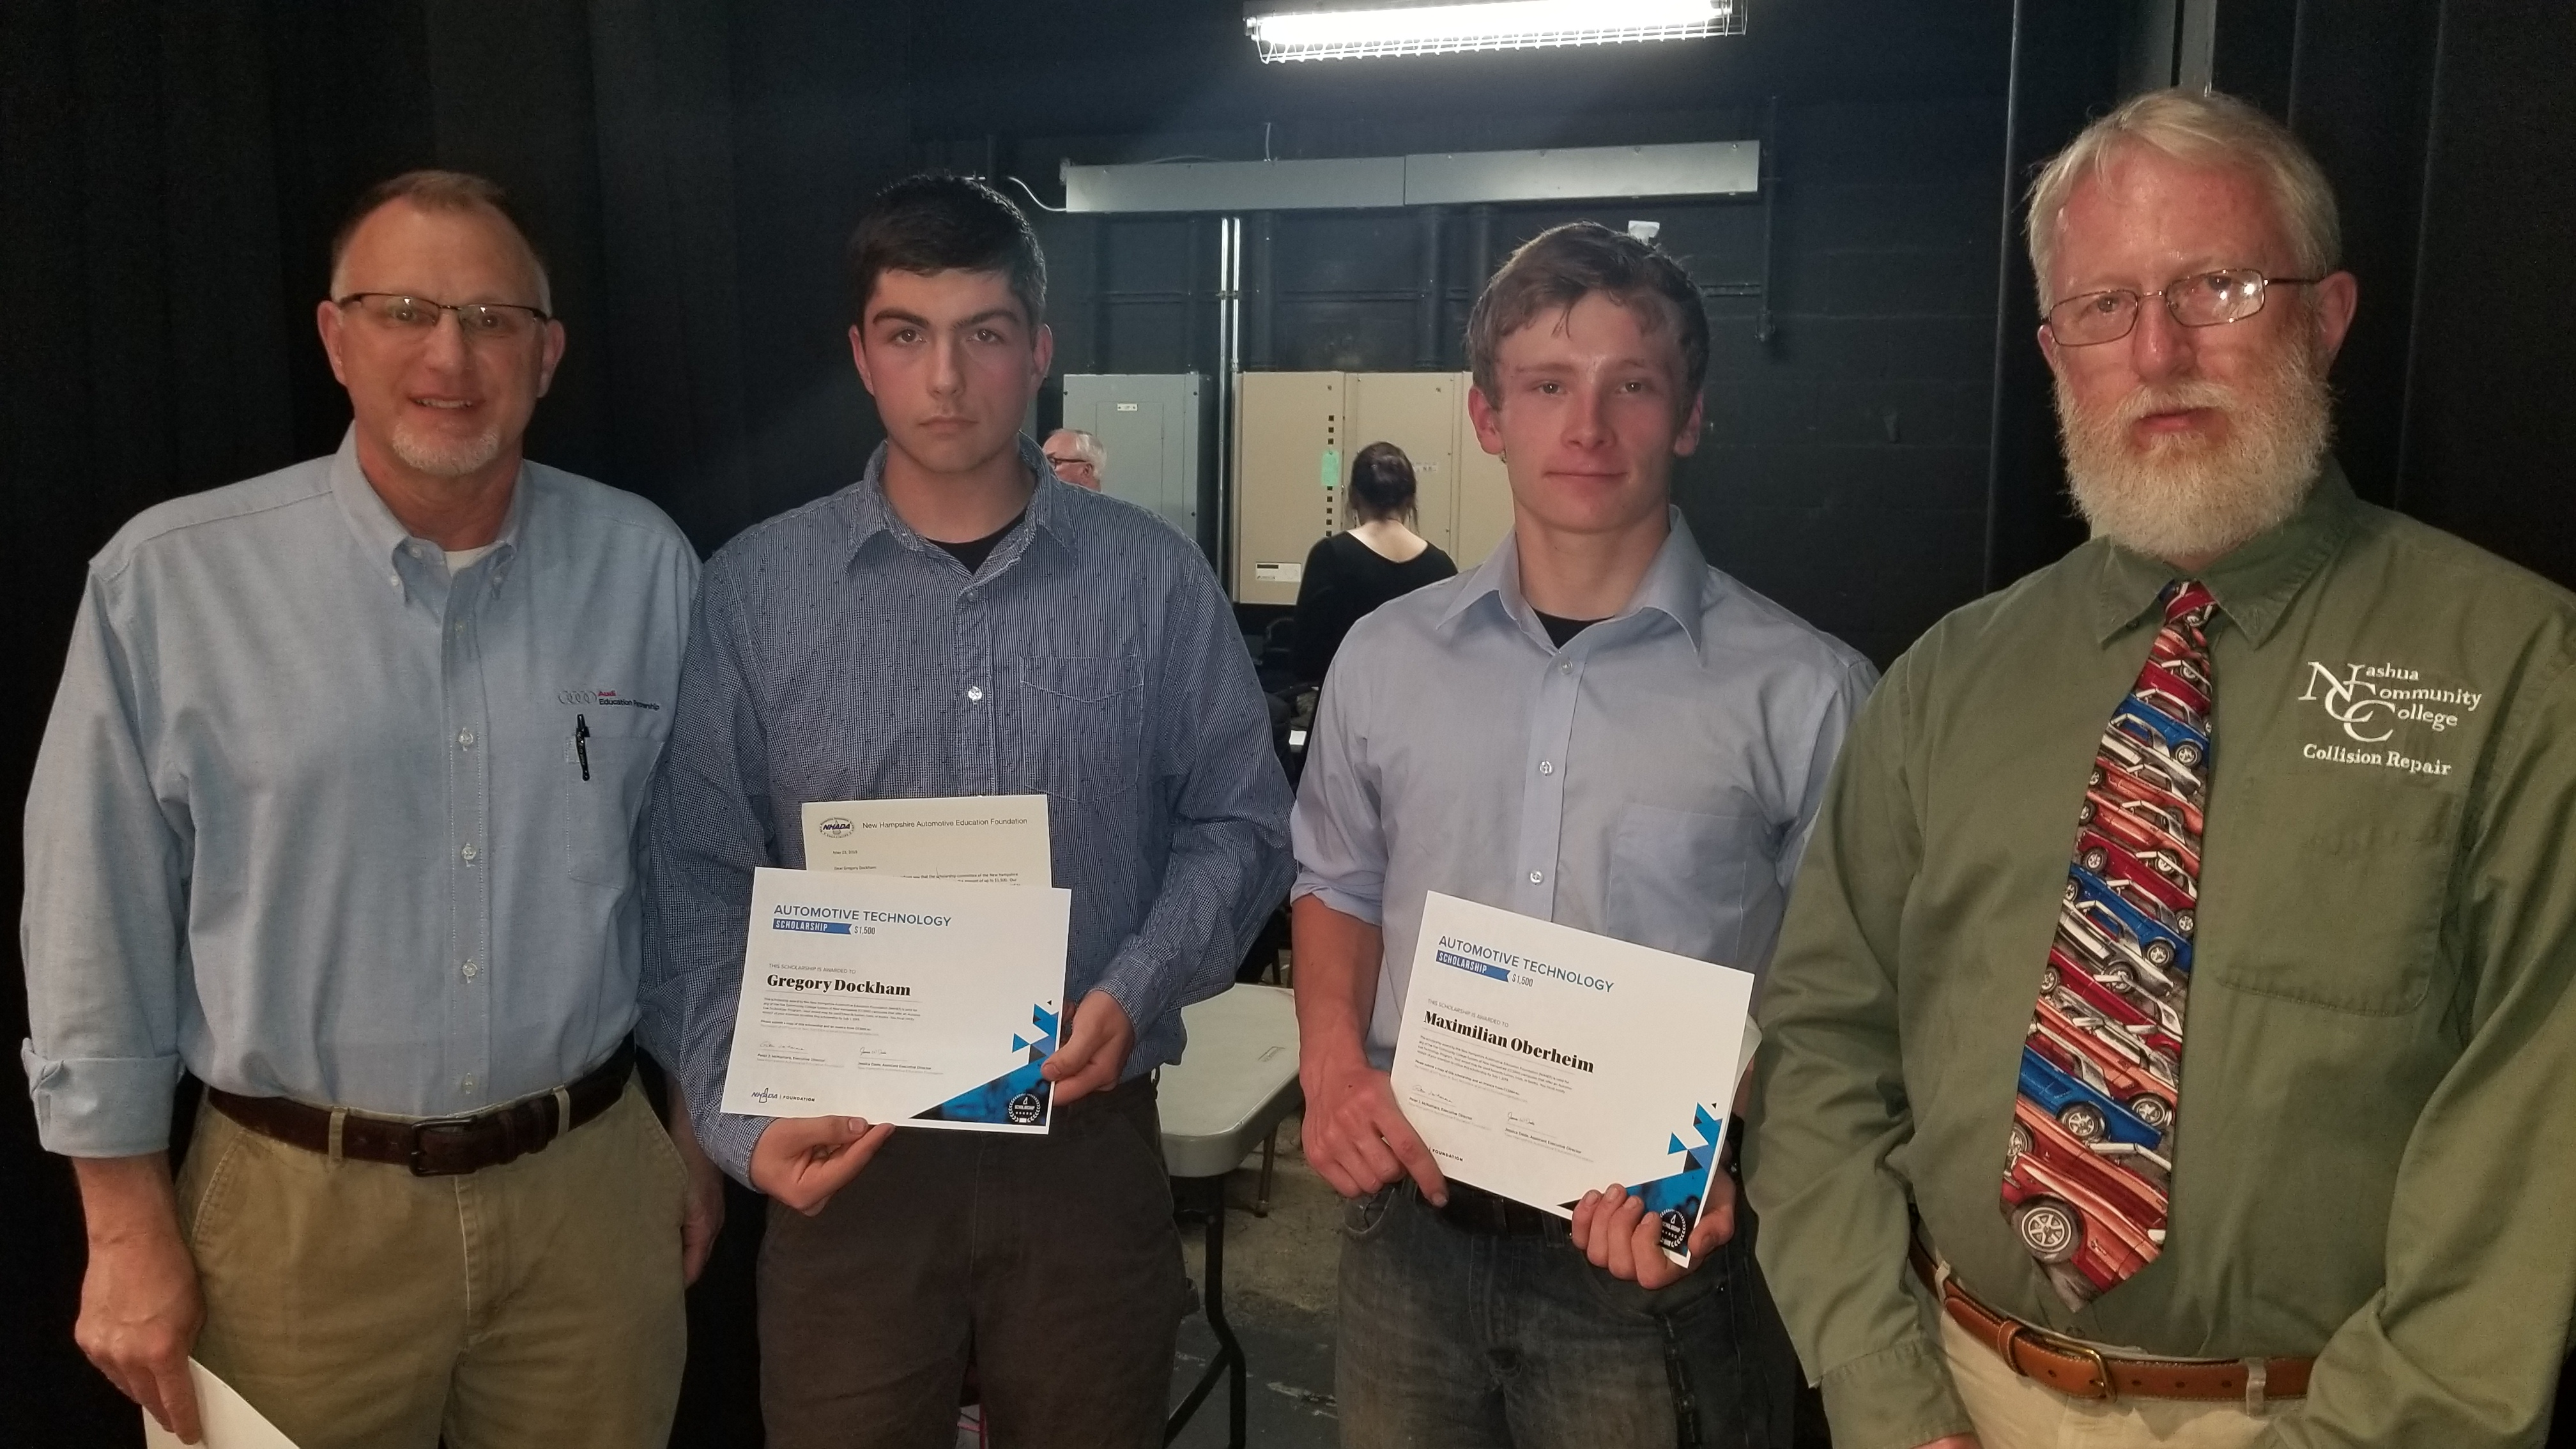 Gregory Dockham and Maximilian Oberheim Receive NHADA Foundation Automotive Technology Scholarship